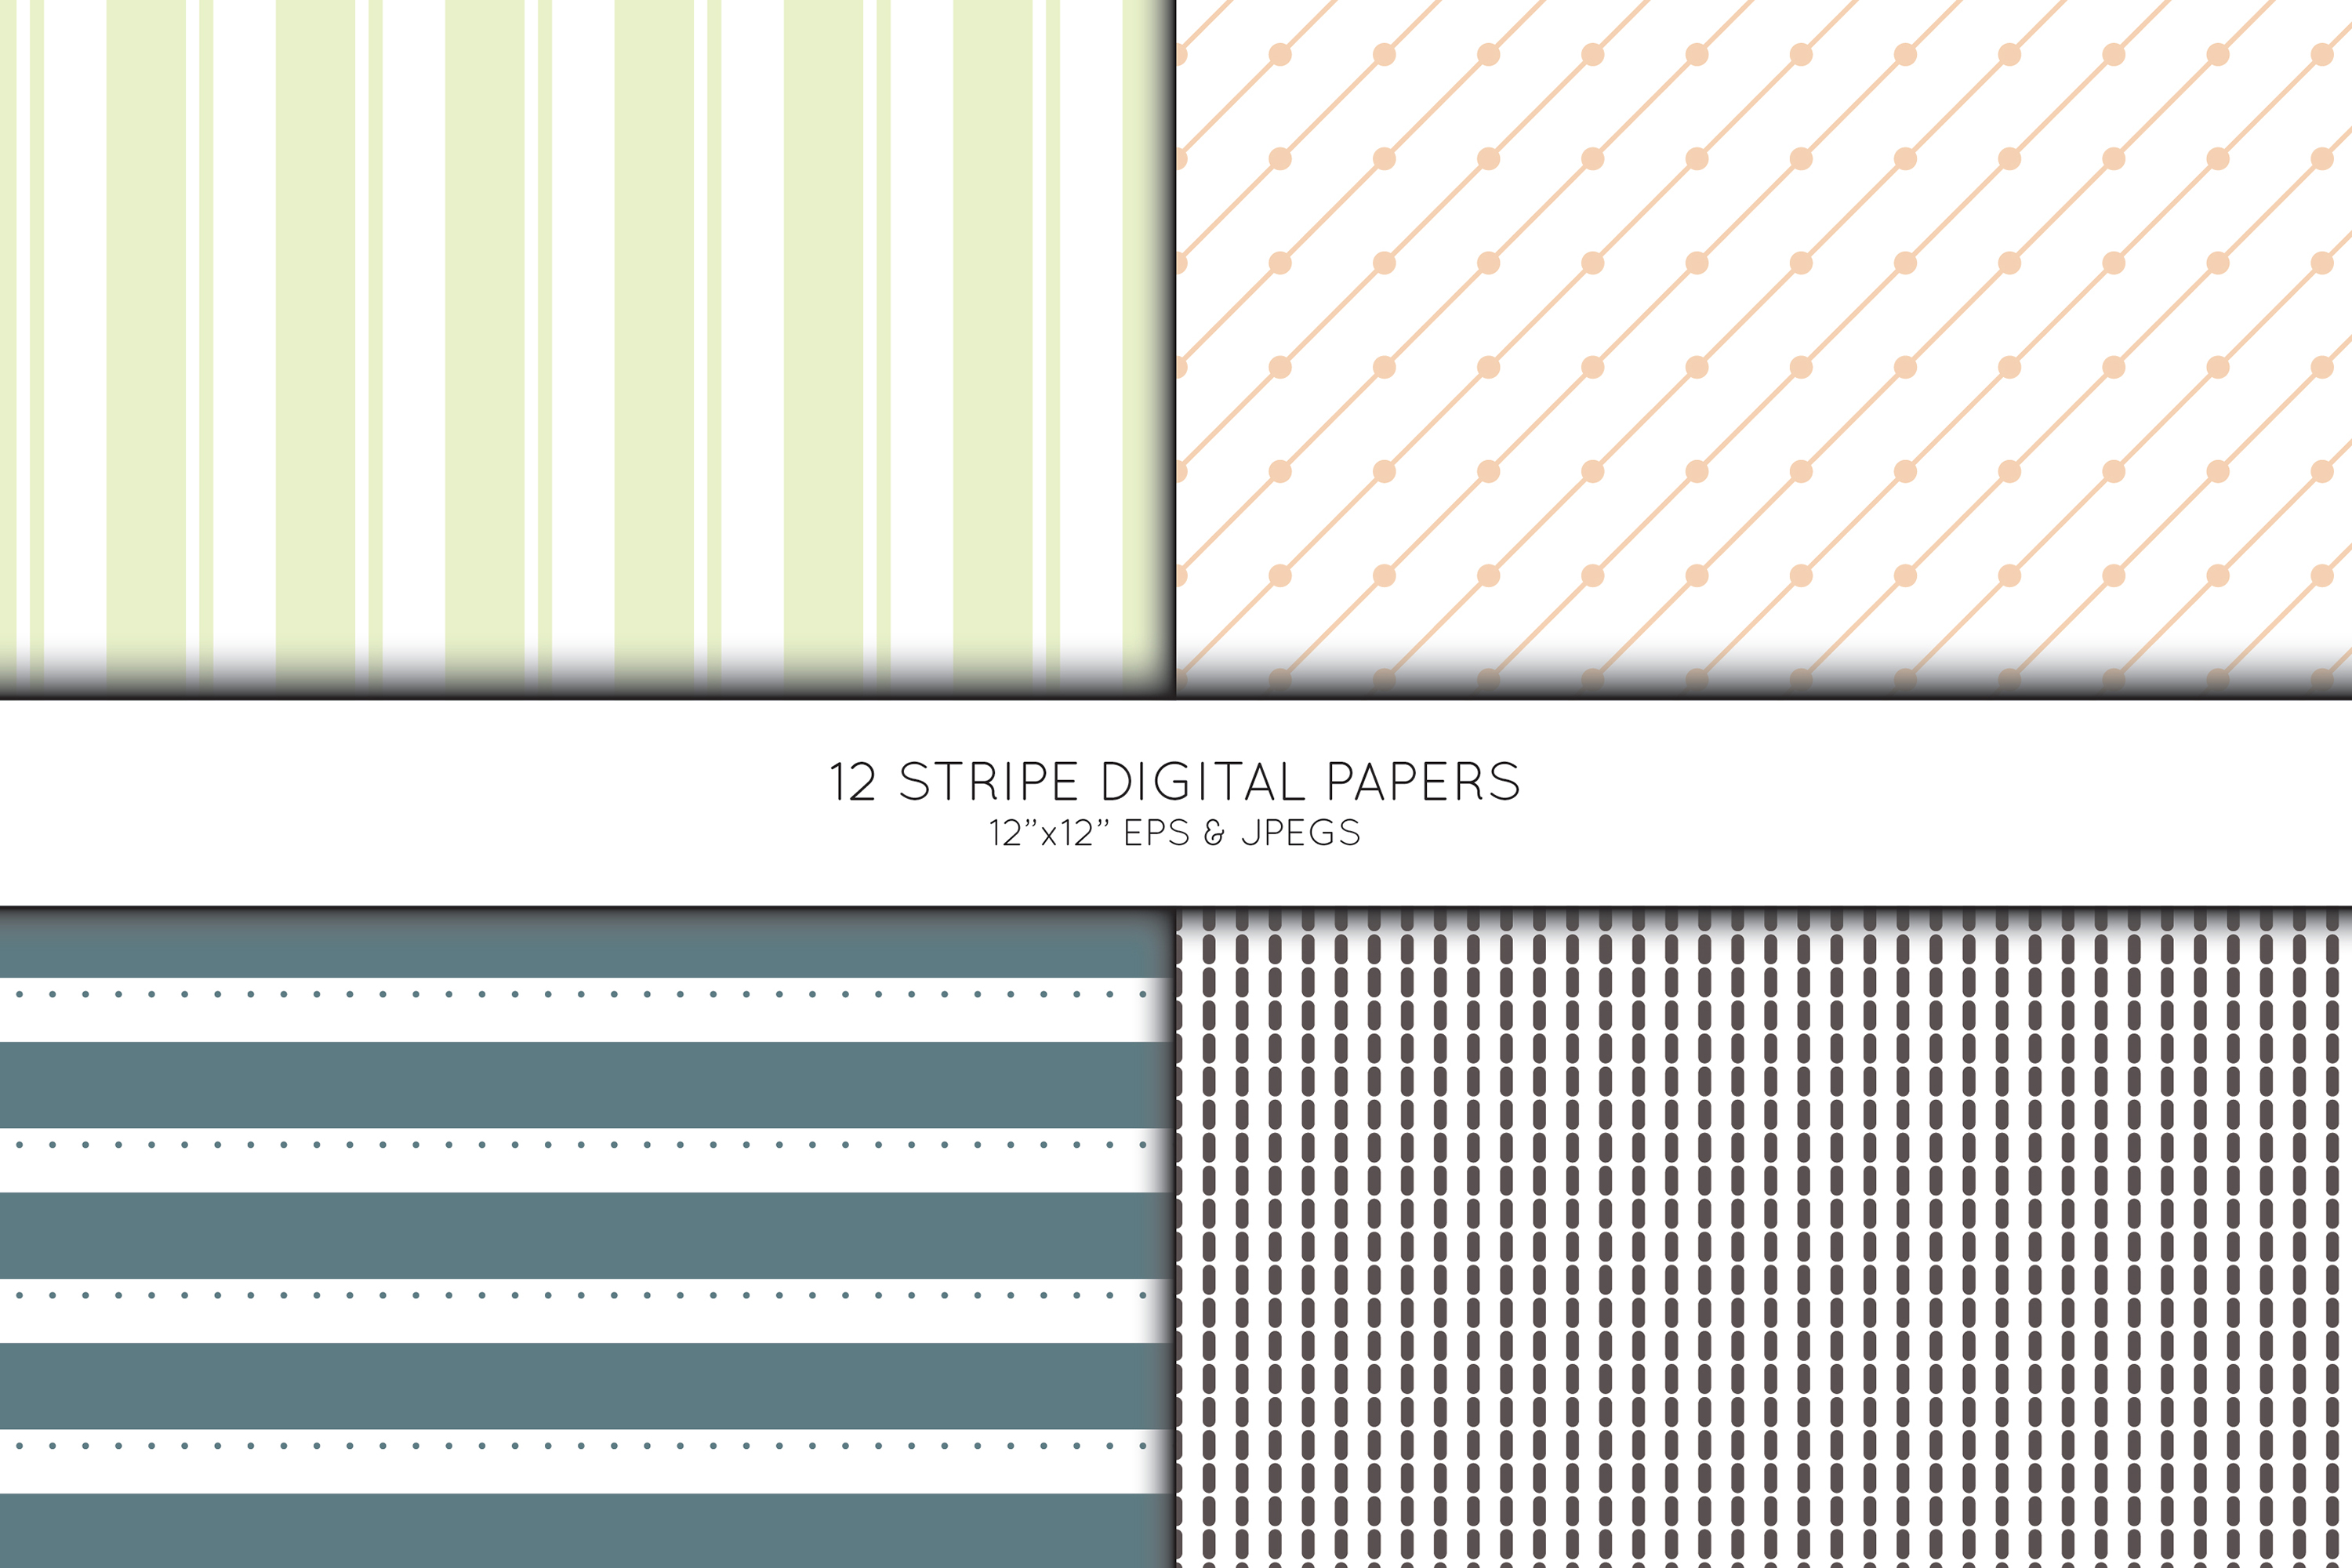 Stripe Digital Paper, Striped Scrapbook paper example image 4